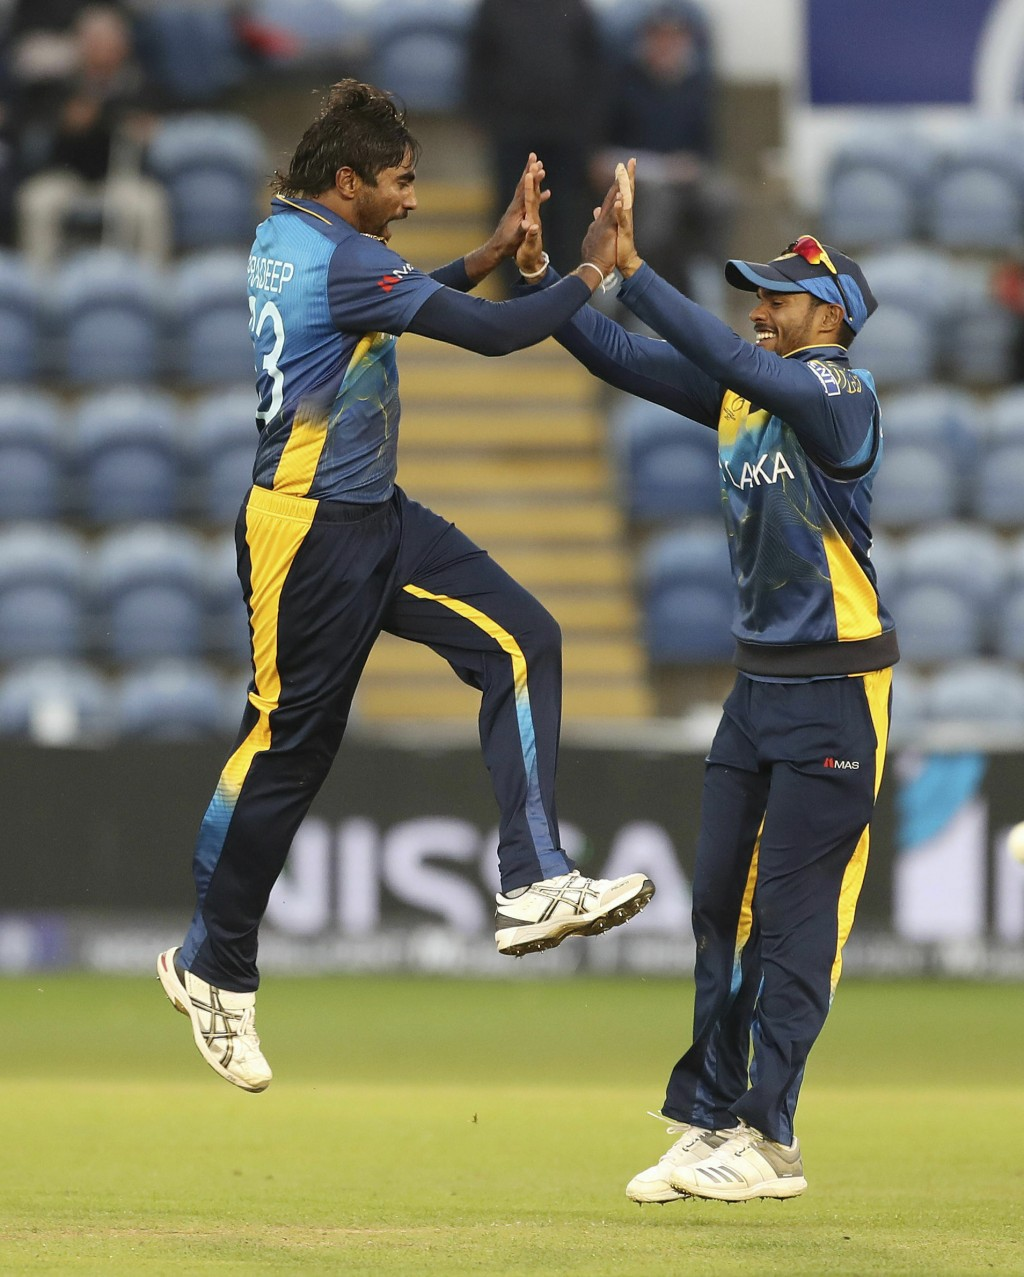 Sri Lanka's Nuwan Pradeep, left, celebrates with Dhananjaya de Silva taking the wicket of Afghanistan's Rashid Khan, during the Cricket World Cup grou